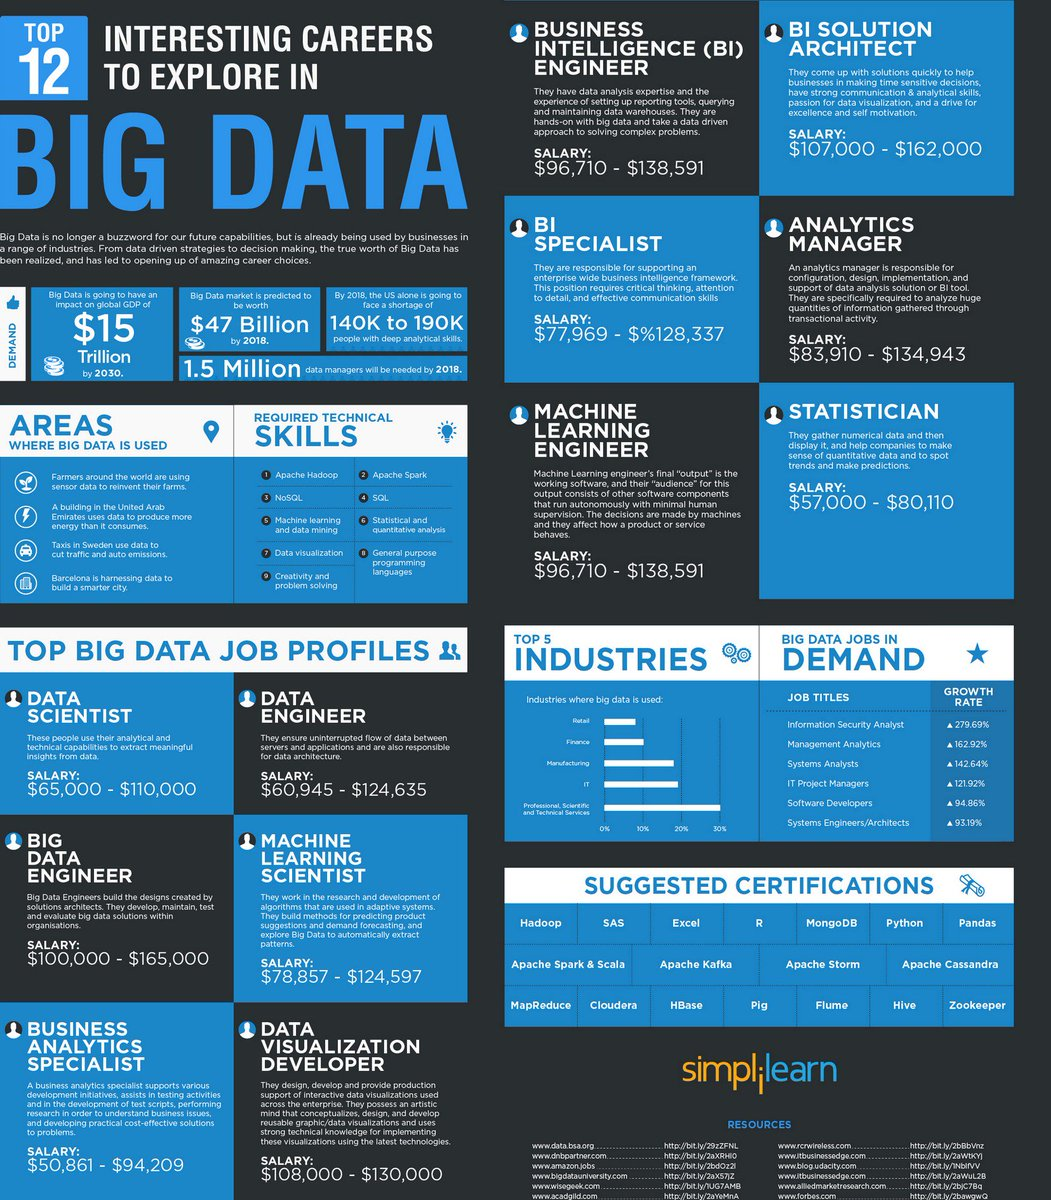 Importance of bigdata in today s market https buff ly 2xacl5v simplilearn chetan_ramesh v ipfconline1 datascience ai deeplearn007pic twitter com